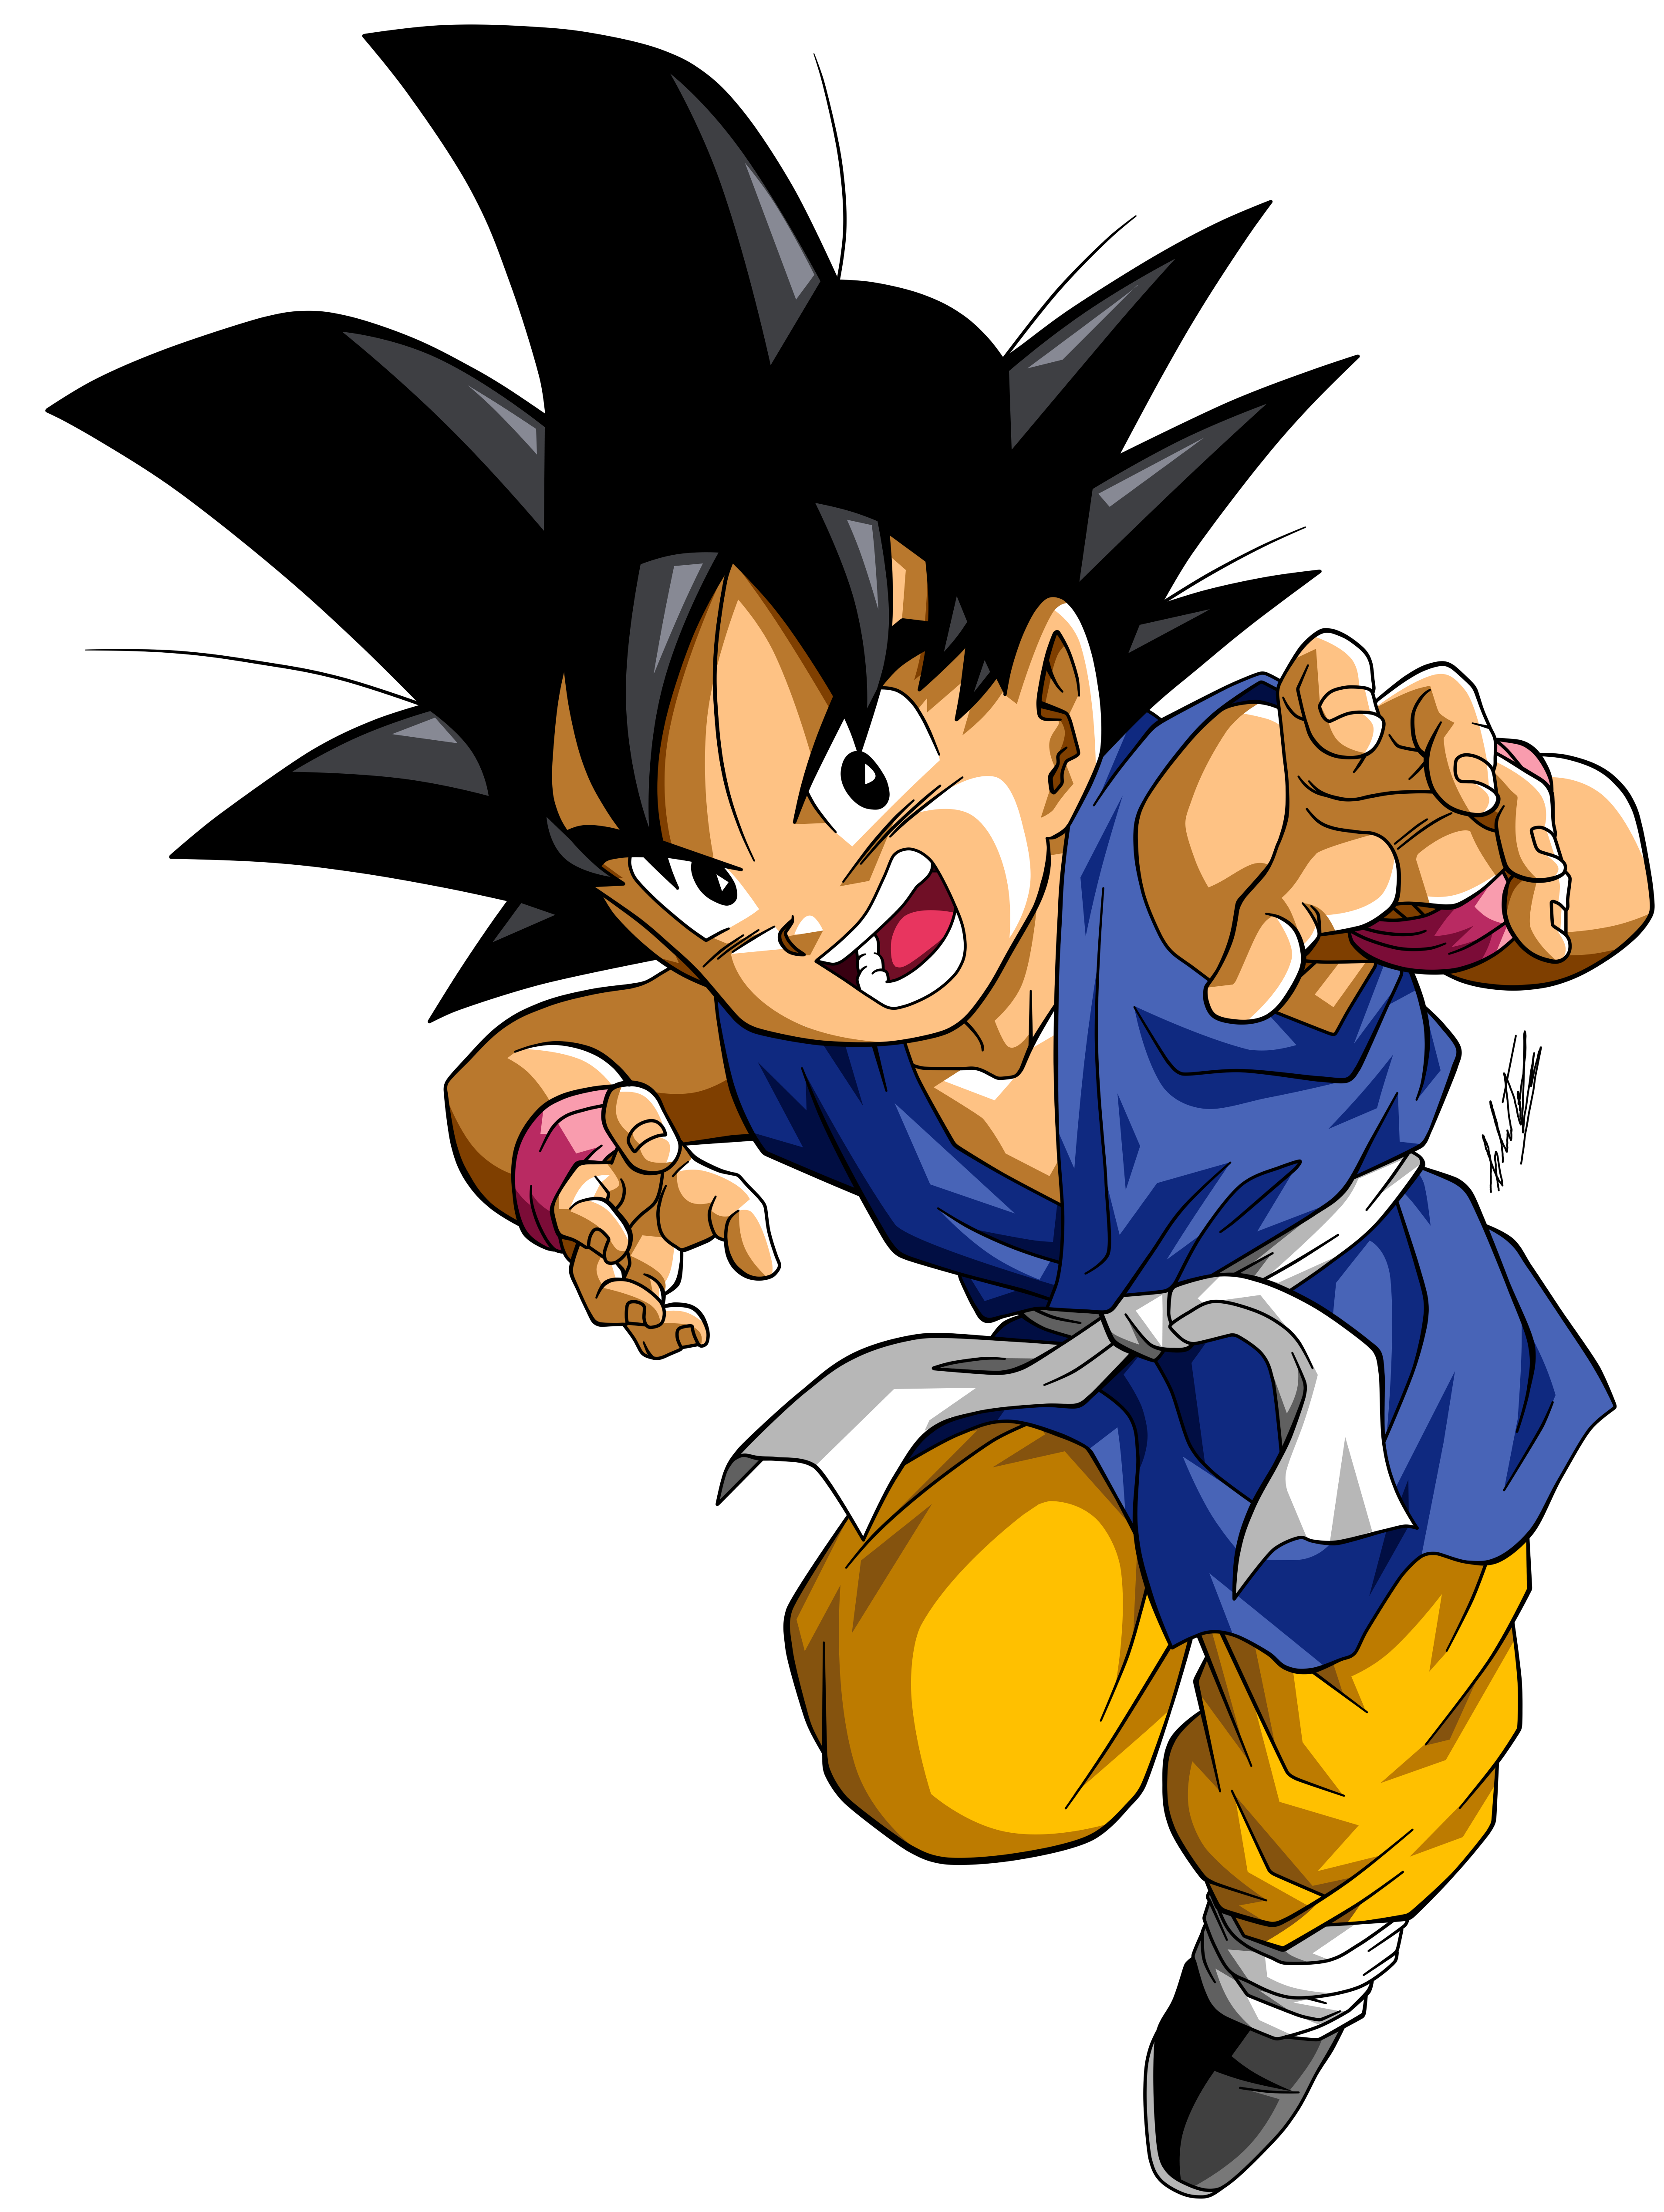 Dragon Ball Z Goku Ssj3 Images FemaleCelebrity